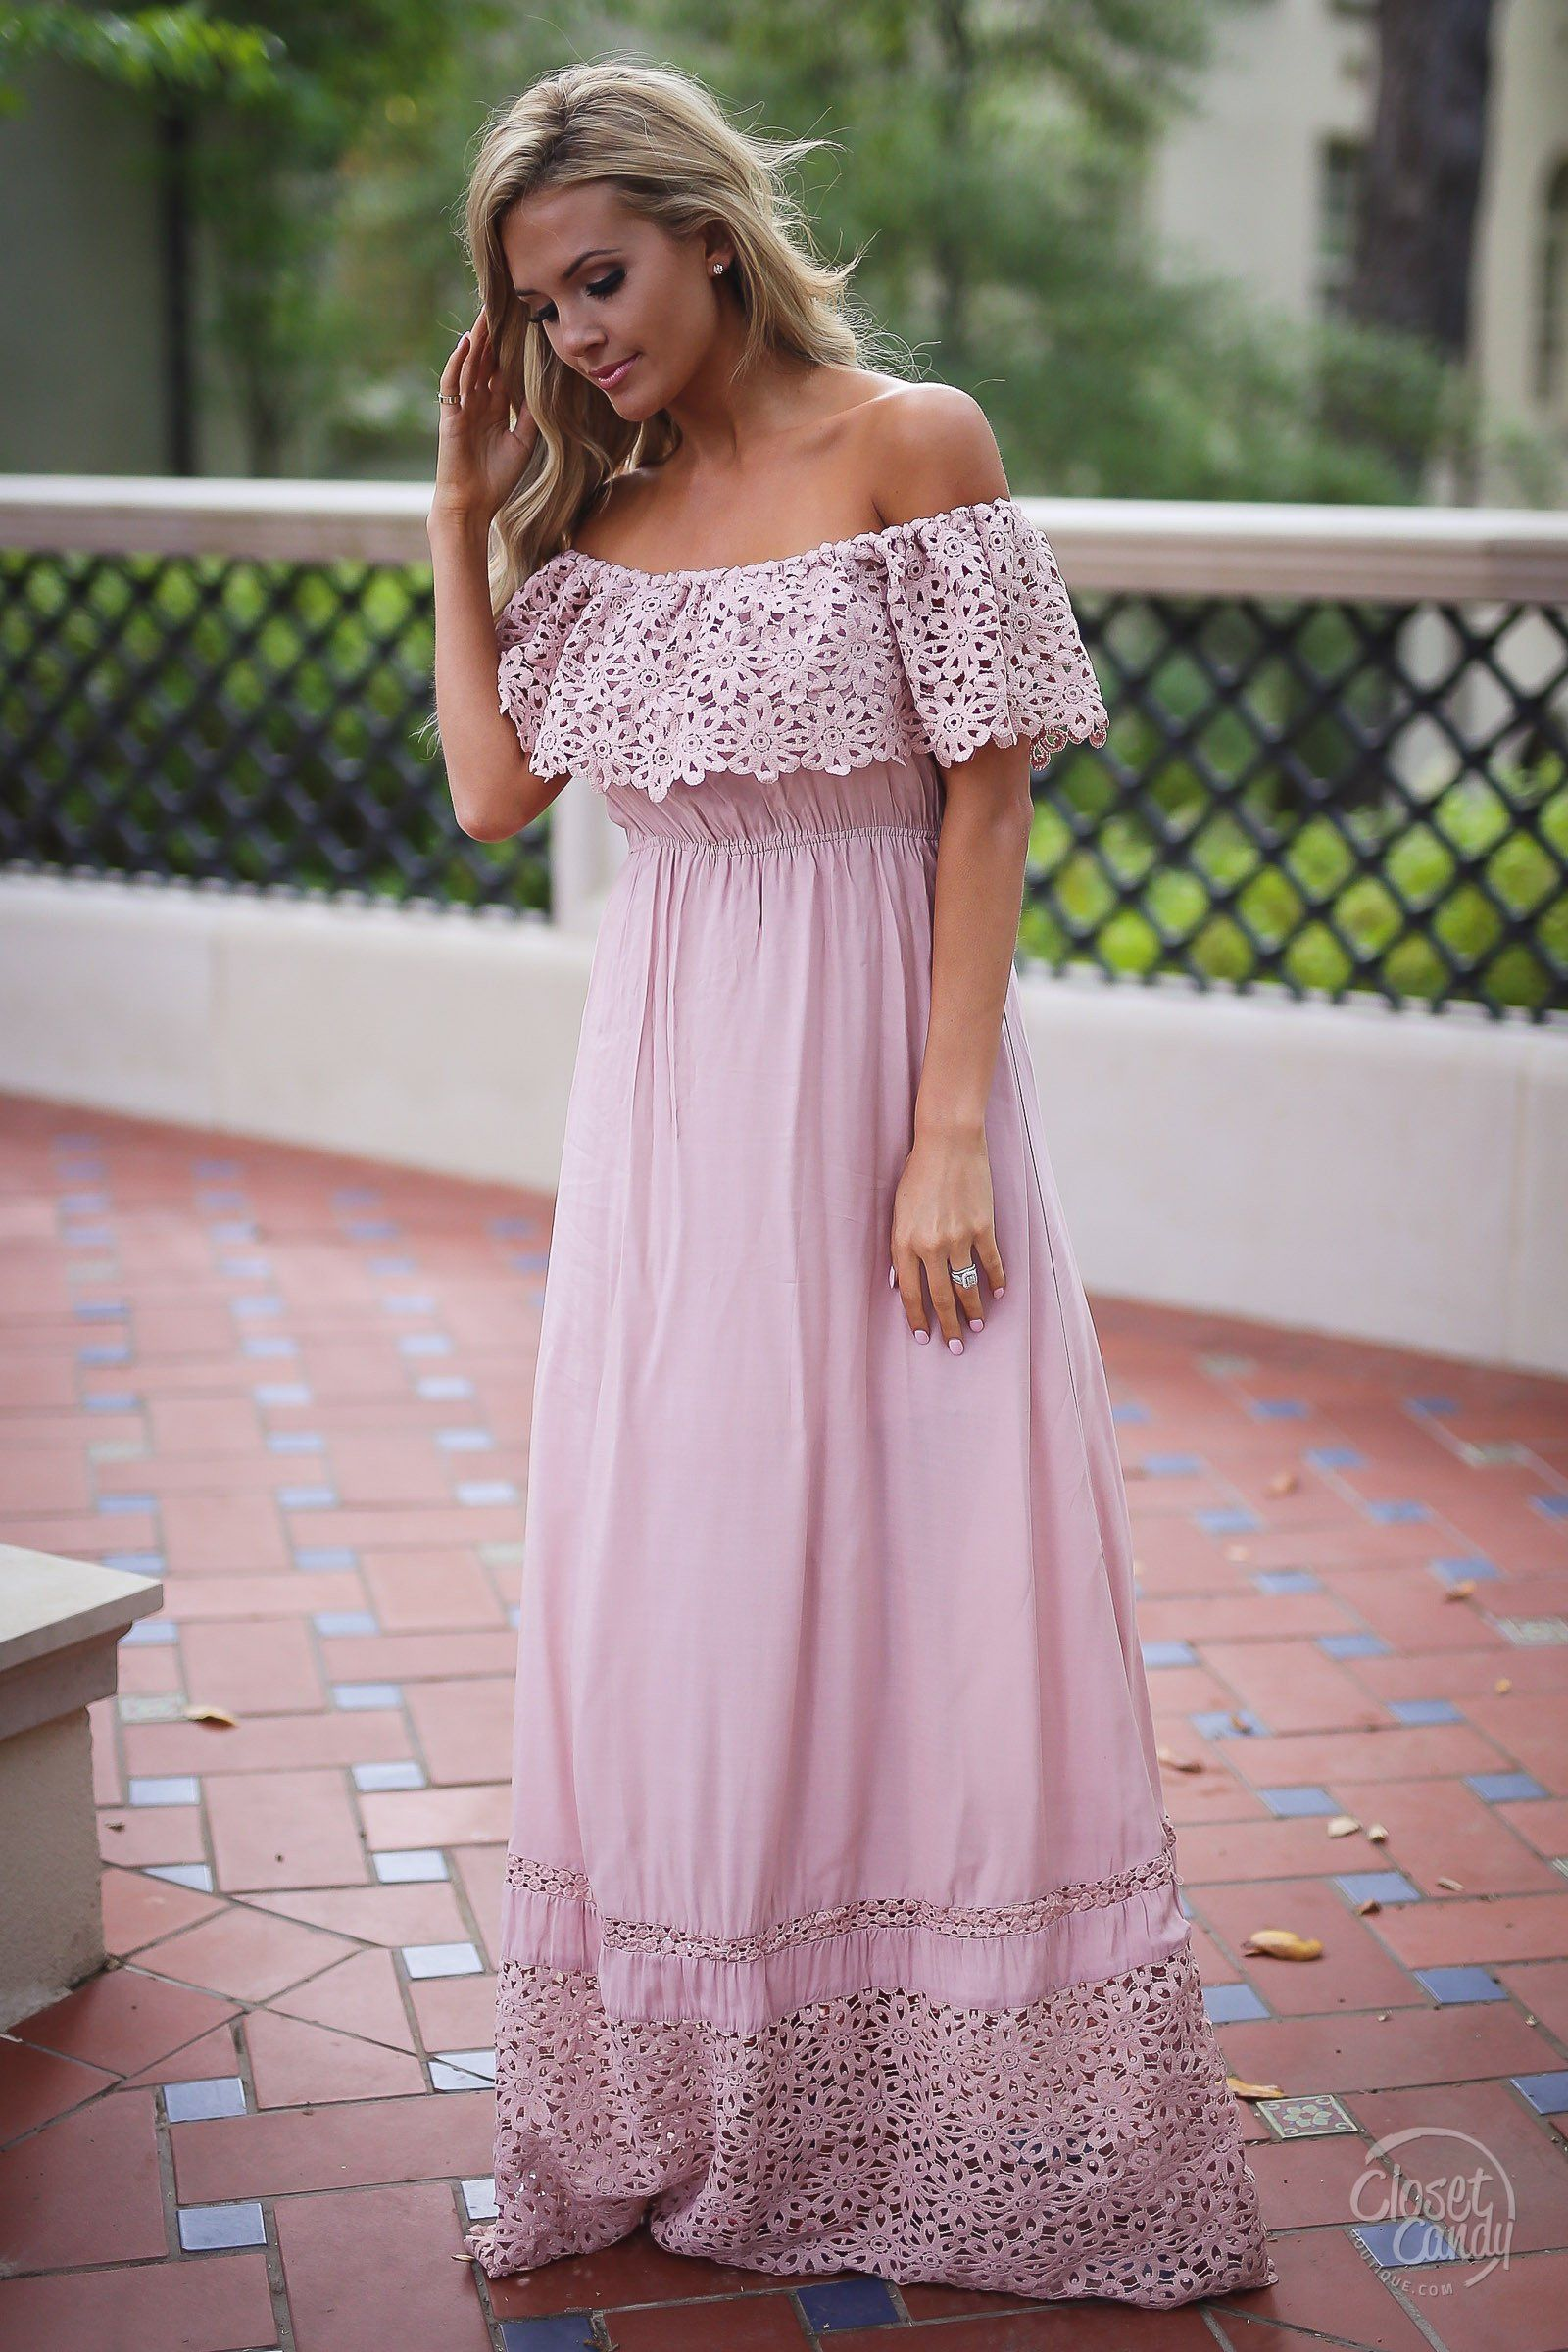 Closet Candy Boutique Dreaming in Daisies Maxi Dress trendy and